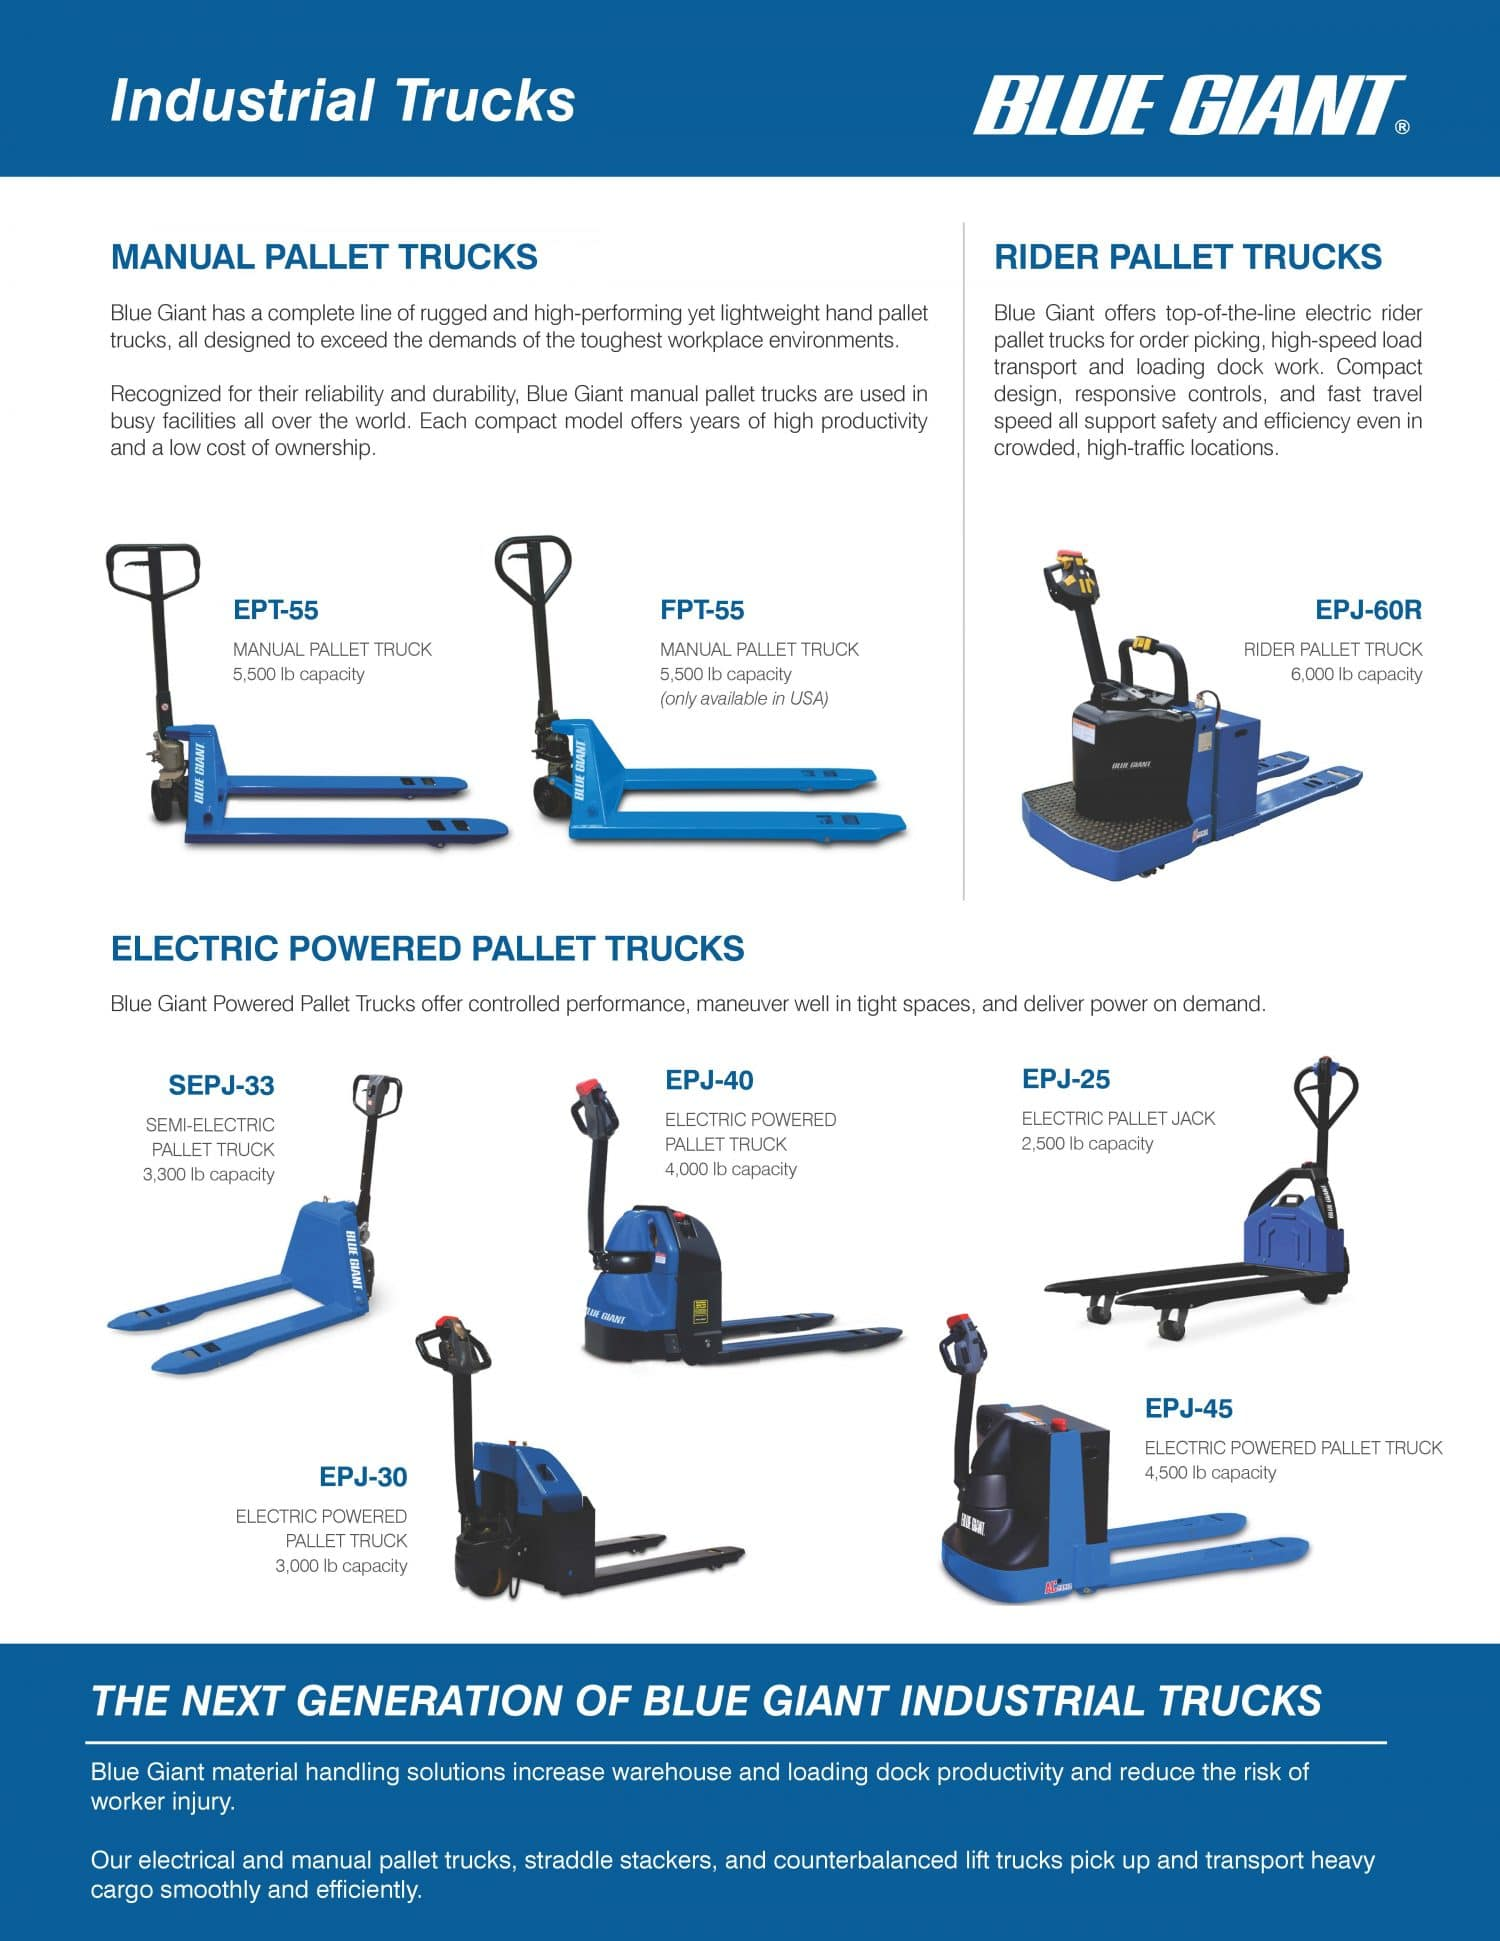 Blue Giant Industrial Trucks, pallet trucks